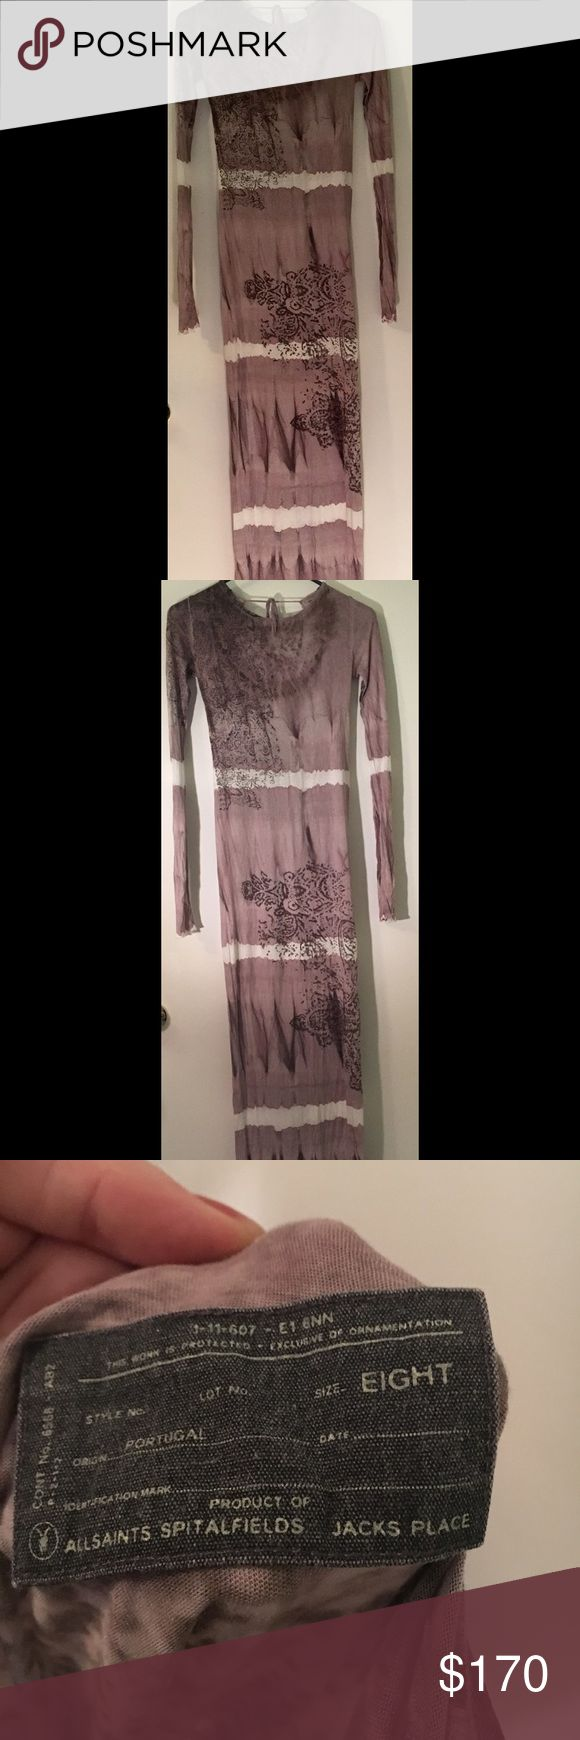 All Saints maxi dress worn twice Beautiful maxi dress by All Saints- size U.K. 8 which is a USA 4. It has some give so could also fit a 6. Full length arms & slightly sheer with eccentric design throughout dress. This cost almost $400 & has been worn no more than several times. All Saints Dresses Maxi